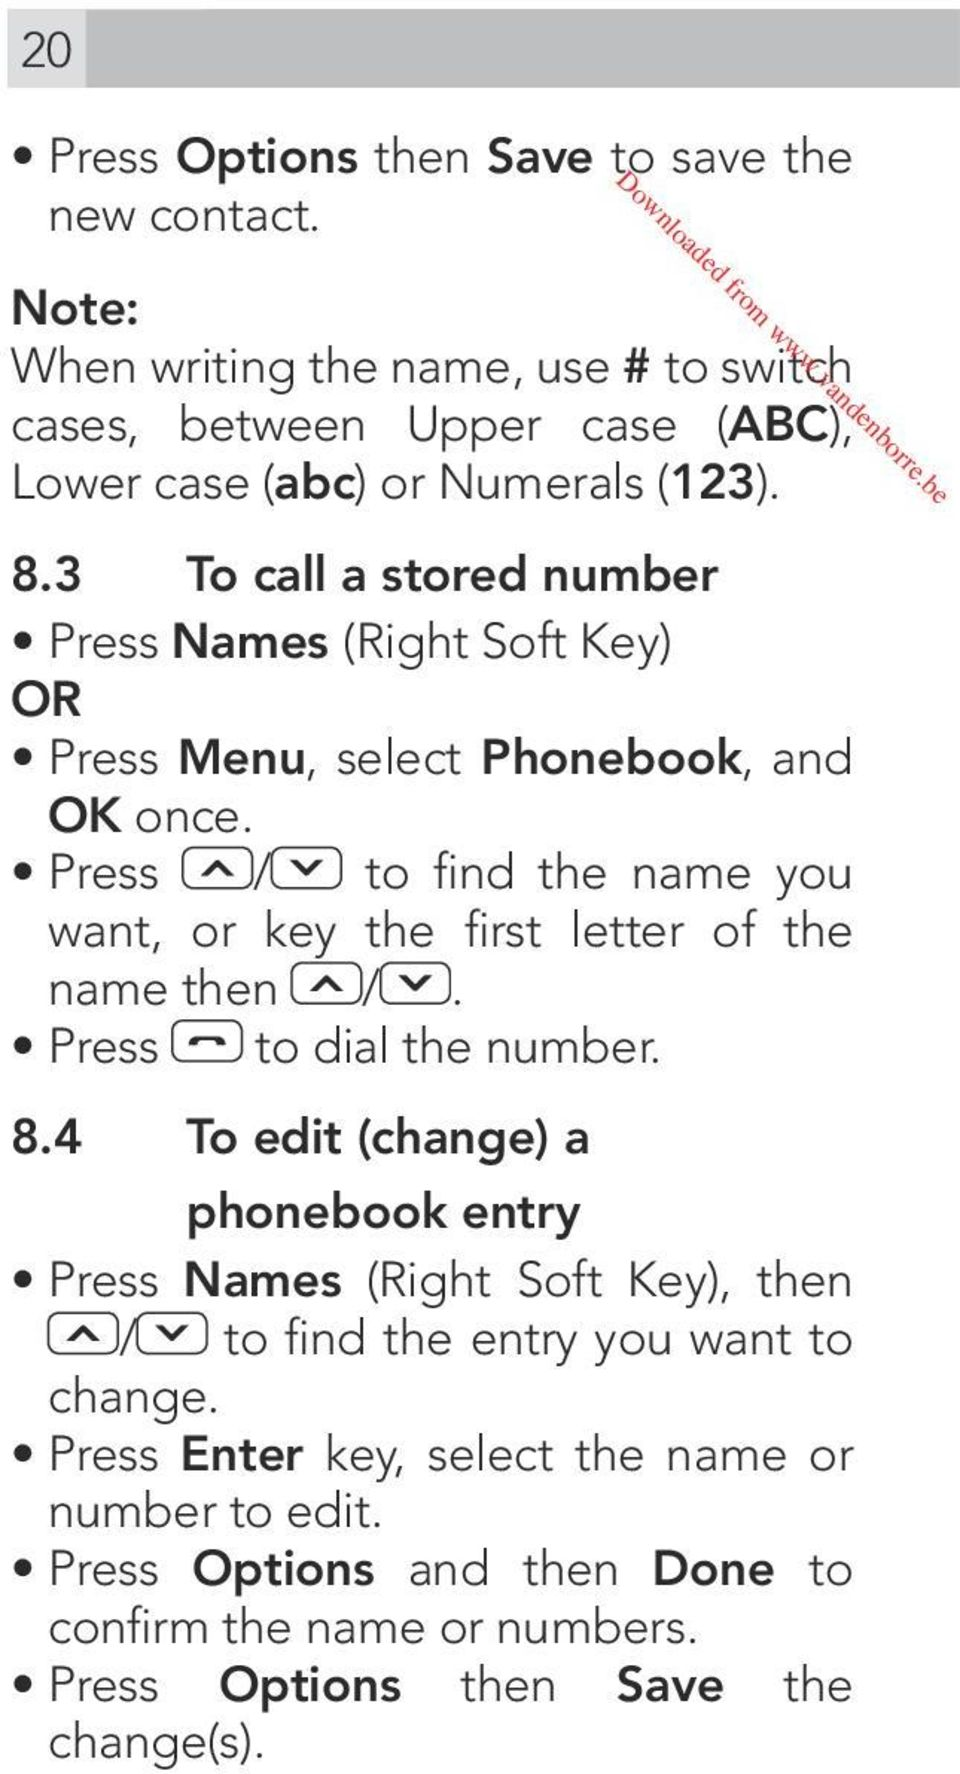 3 To call a stored number Press Names (Right Soft Key) OR Press Menu, select Phonebook, and OK once.